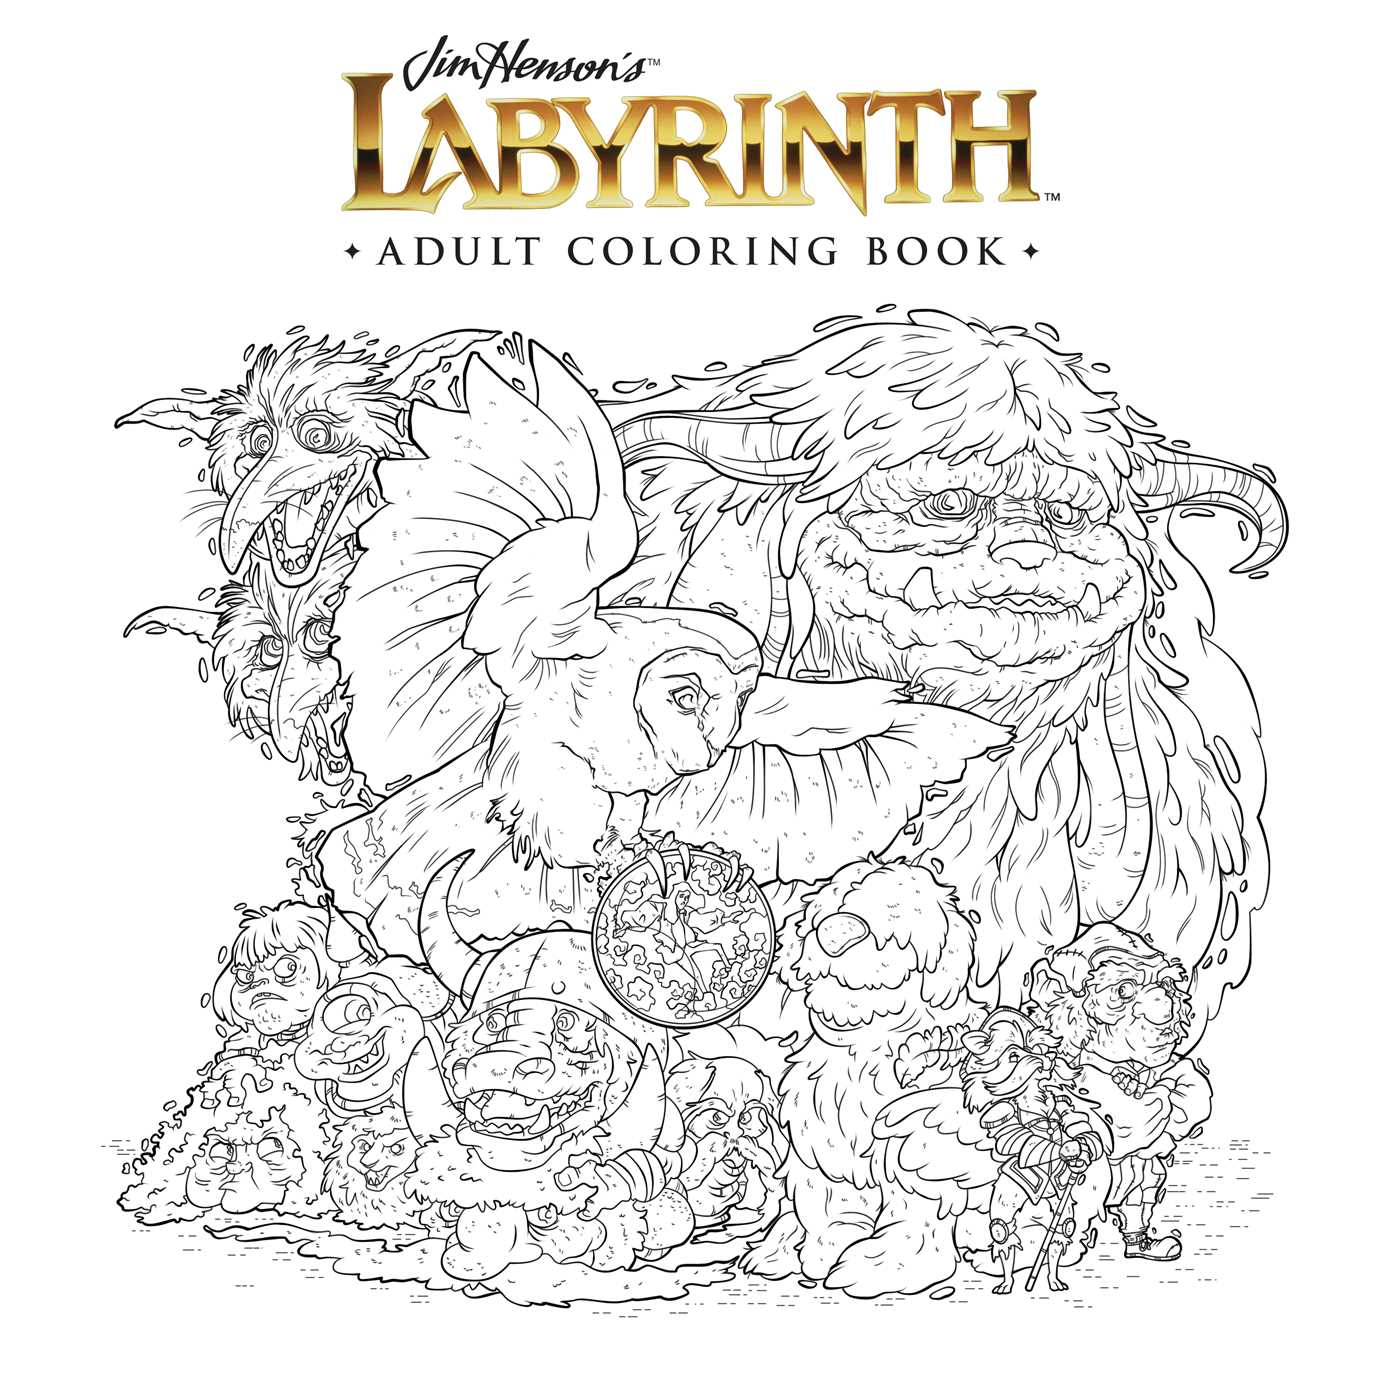 labyrinth coloring pages Jim Henson's Labyrinth Adult Coloring Book | Book by Jim Henson  labyrinth coloring pages